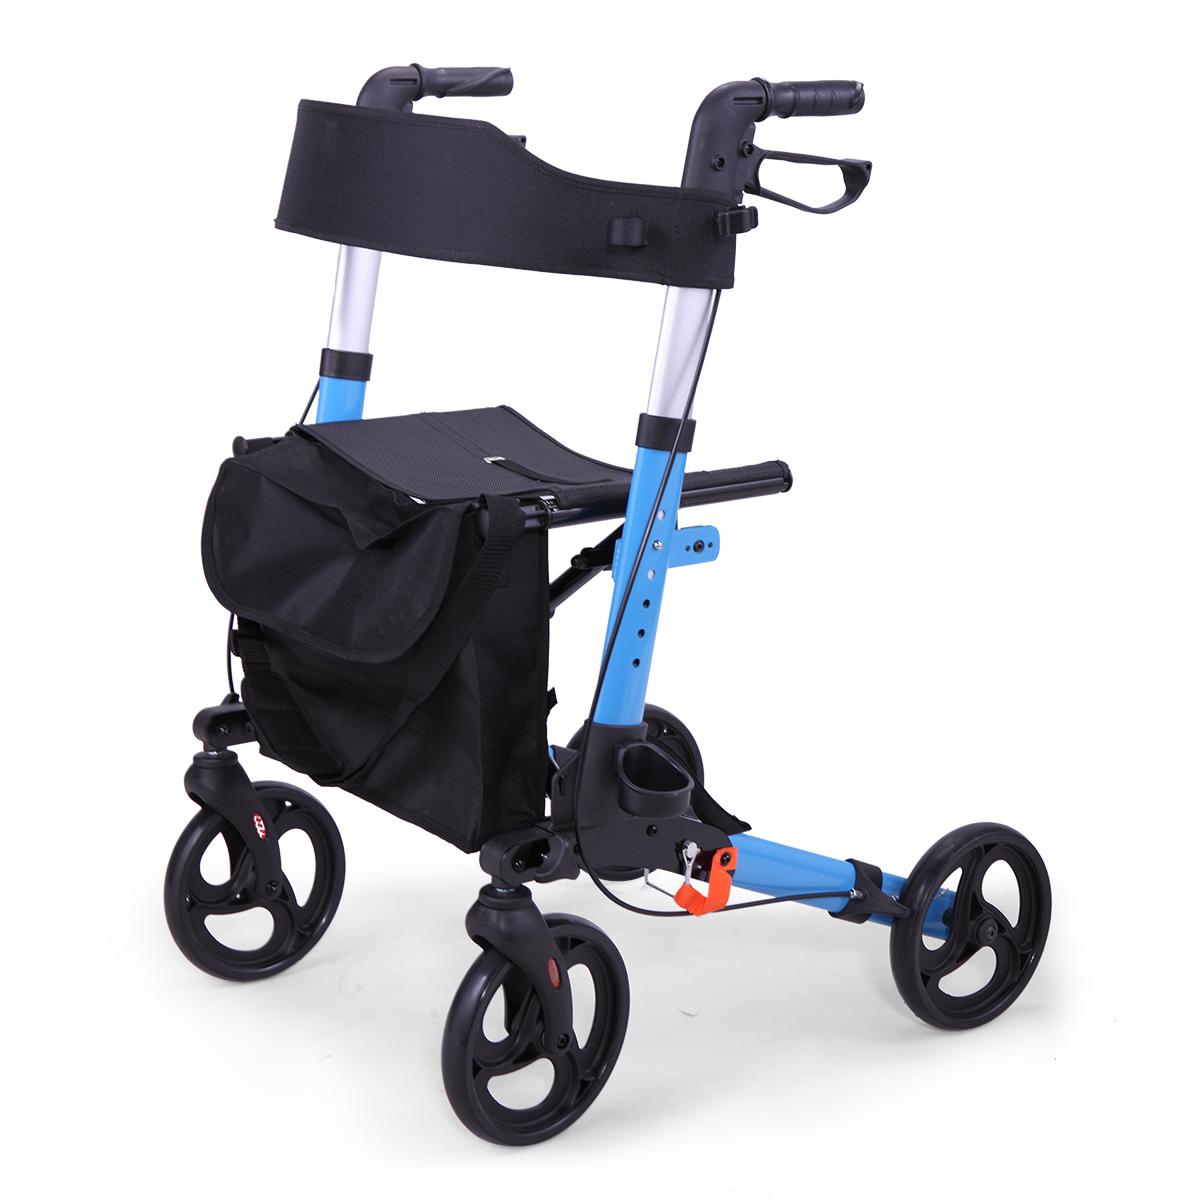 Jaxpety Medical Rollator Walker Foldable Stable Compact